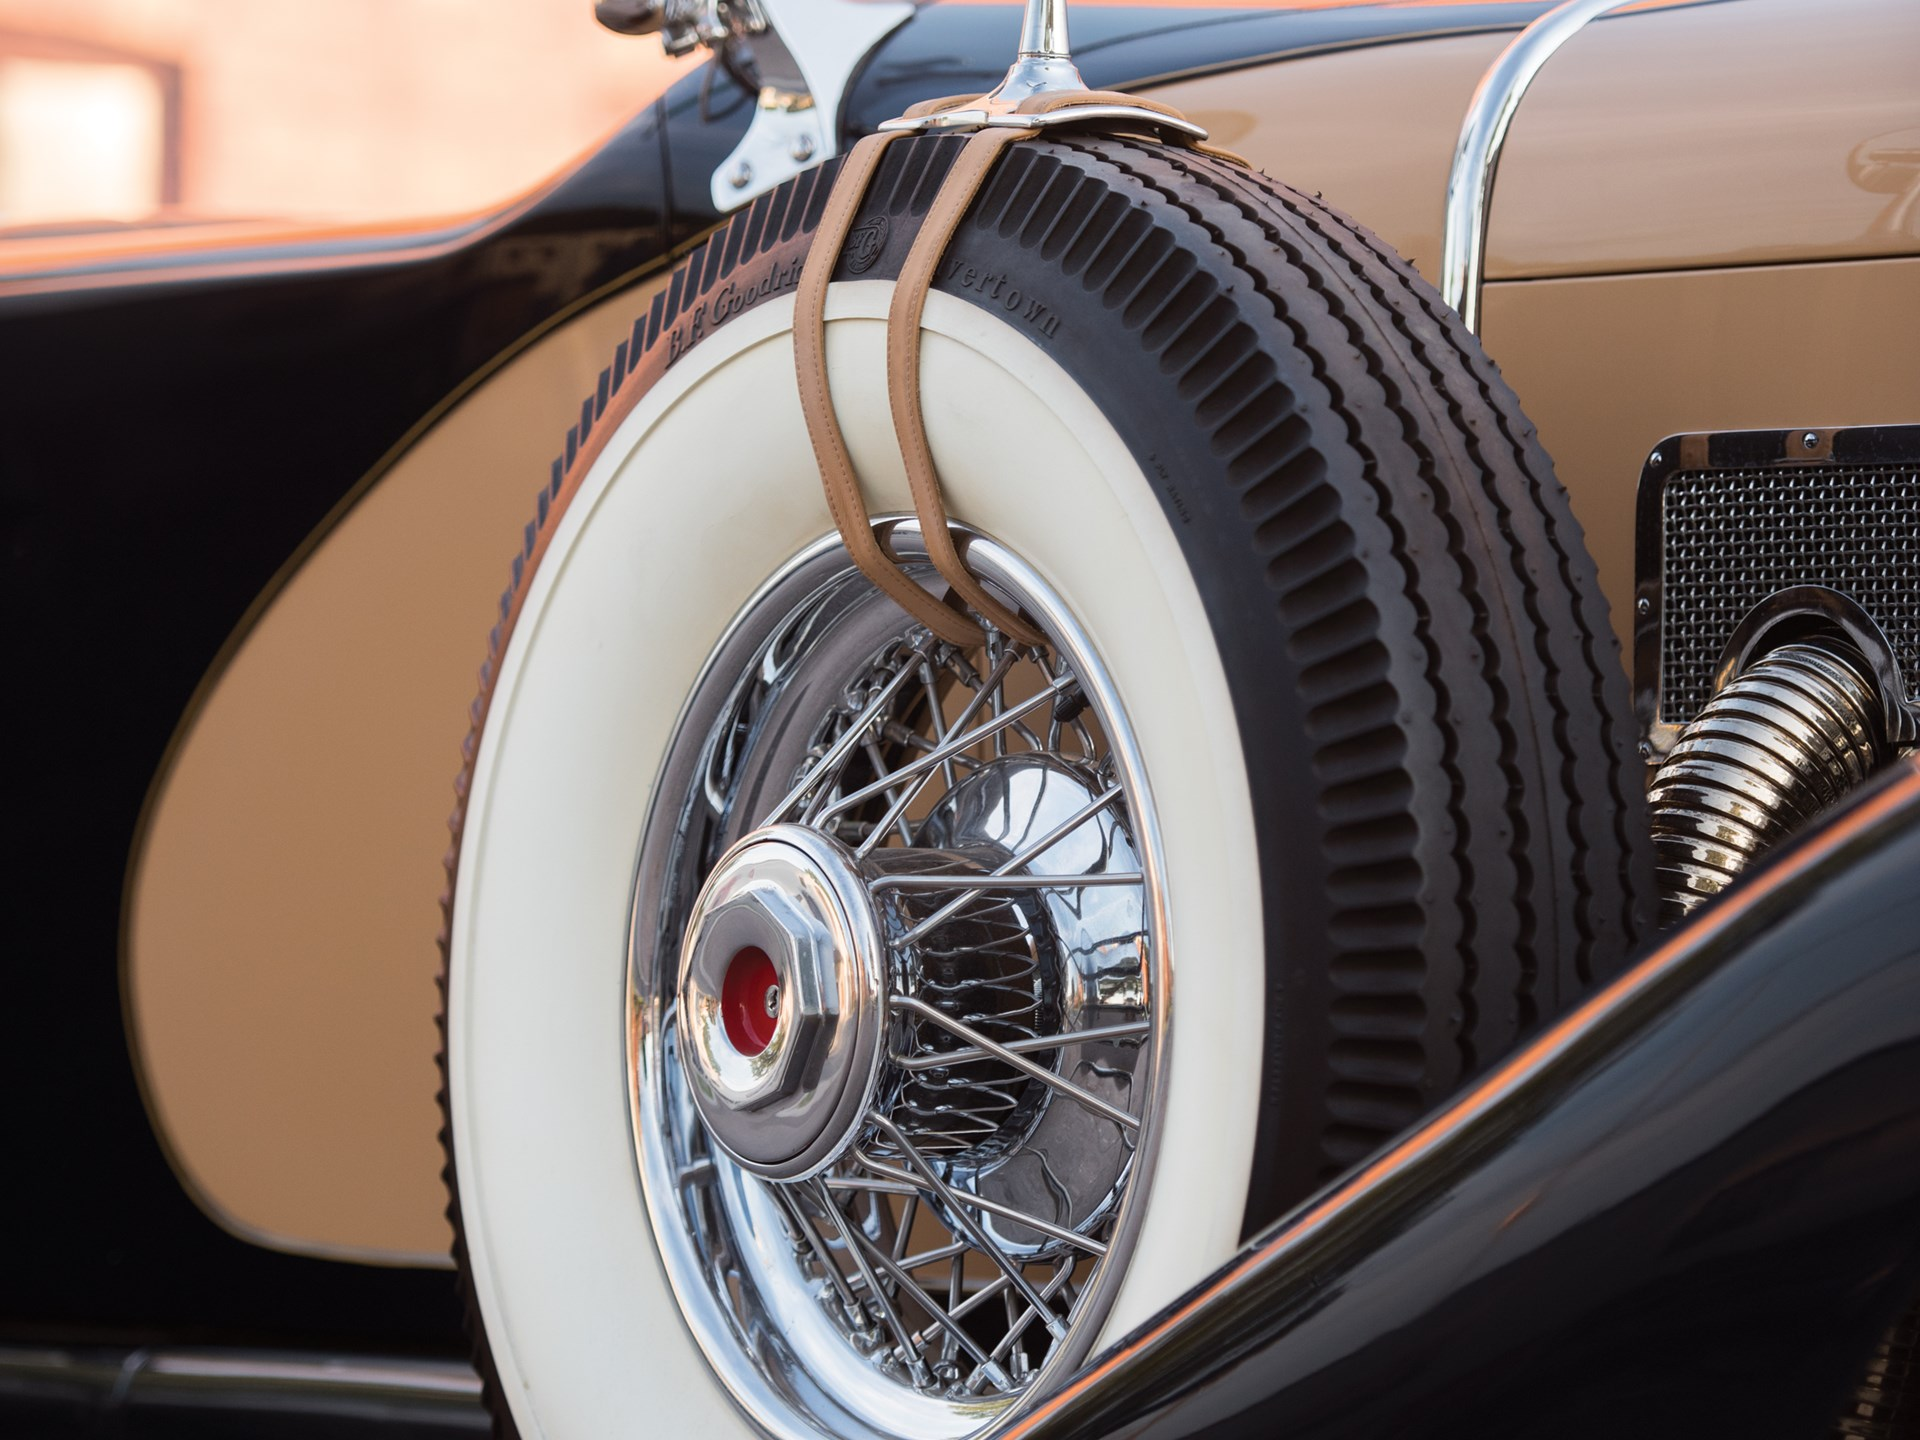 1935 Duesenberg Model SJ Dual-Cowl Phaeton in the style of LaGrande